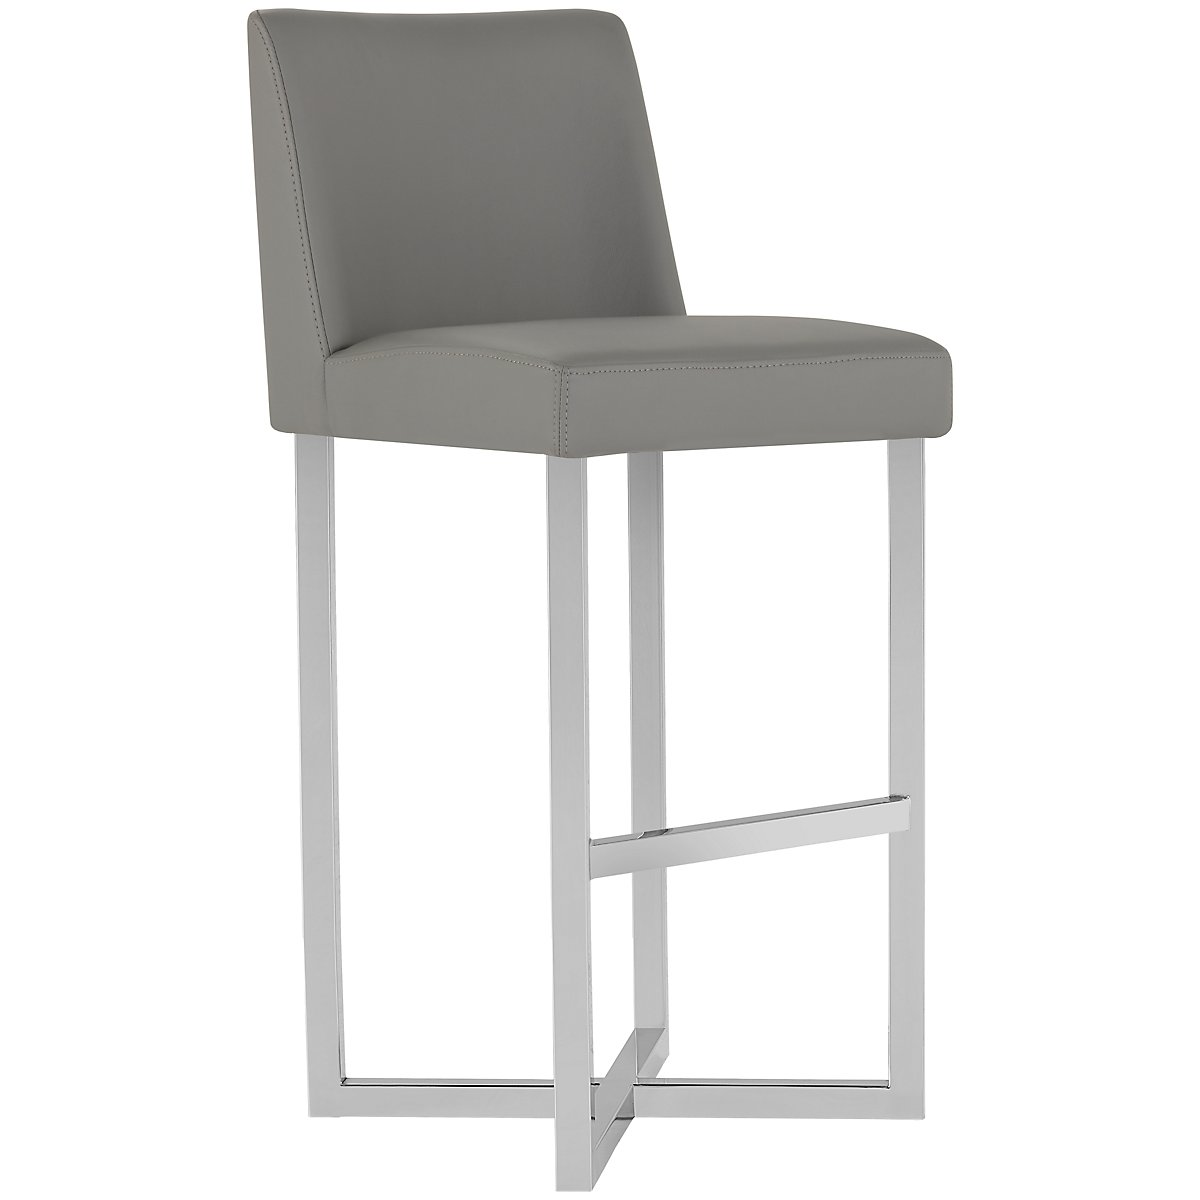 "Howard Gray Upholstered 30"" Upholstered Barstool"